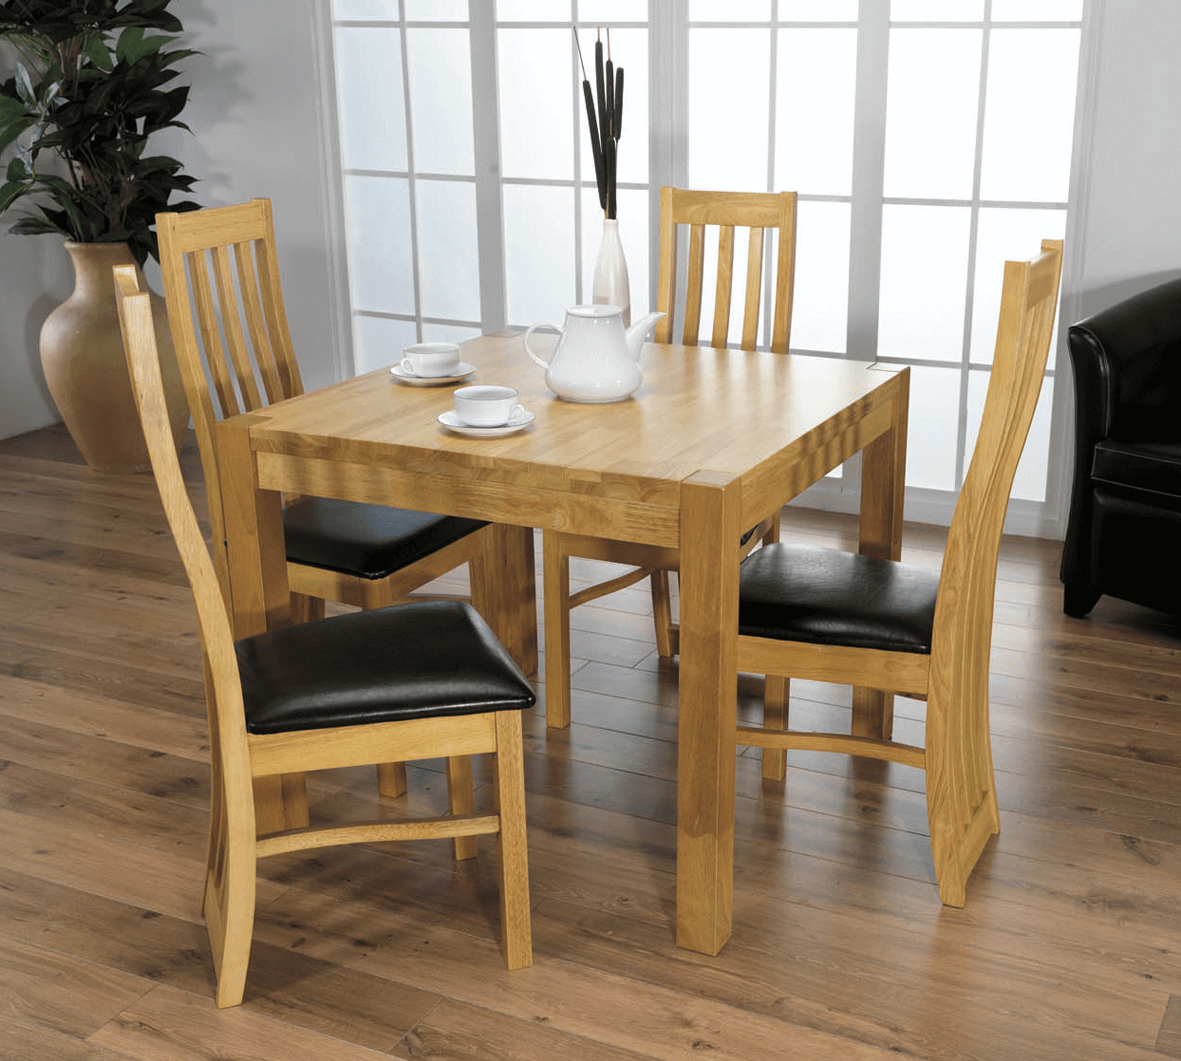 Dining Room Table Decor For Small Family